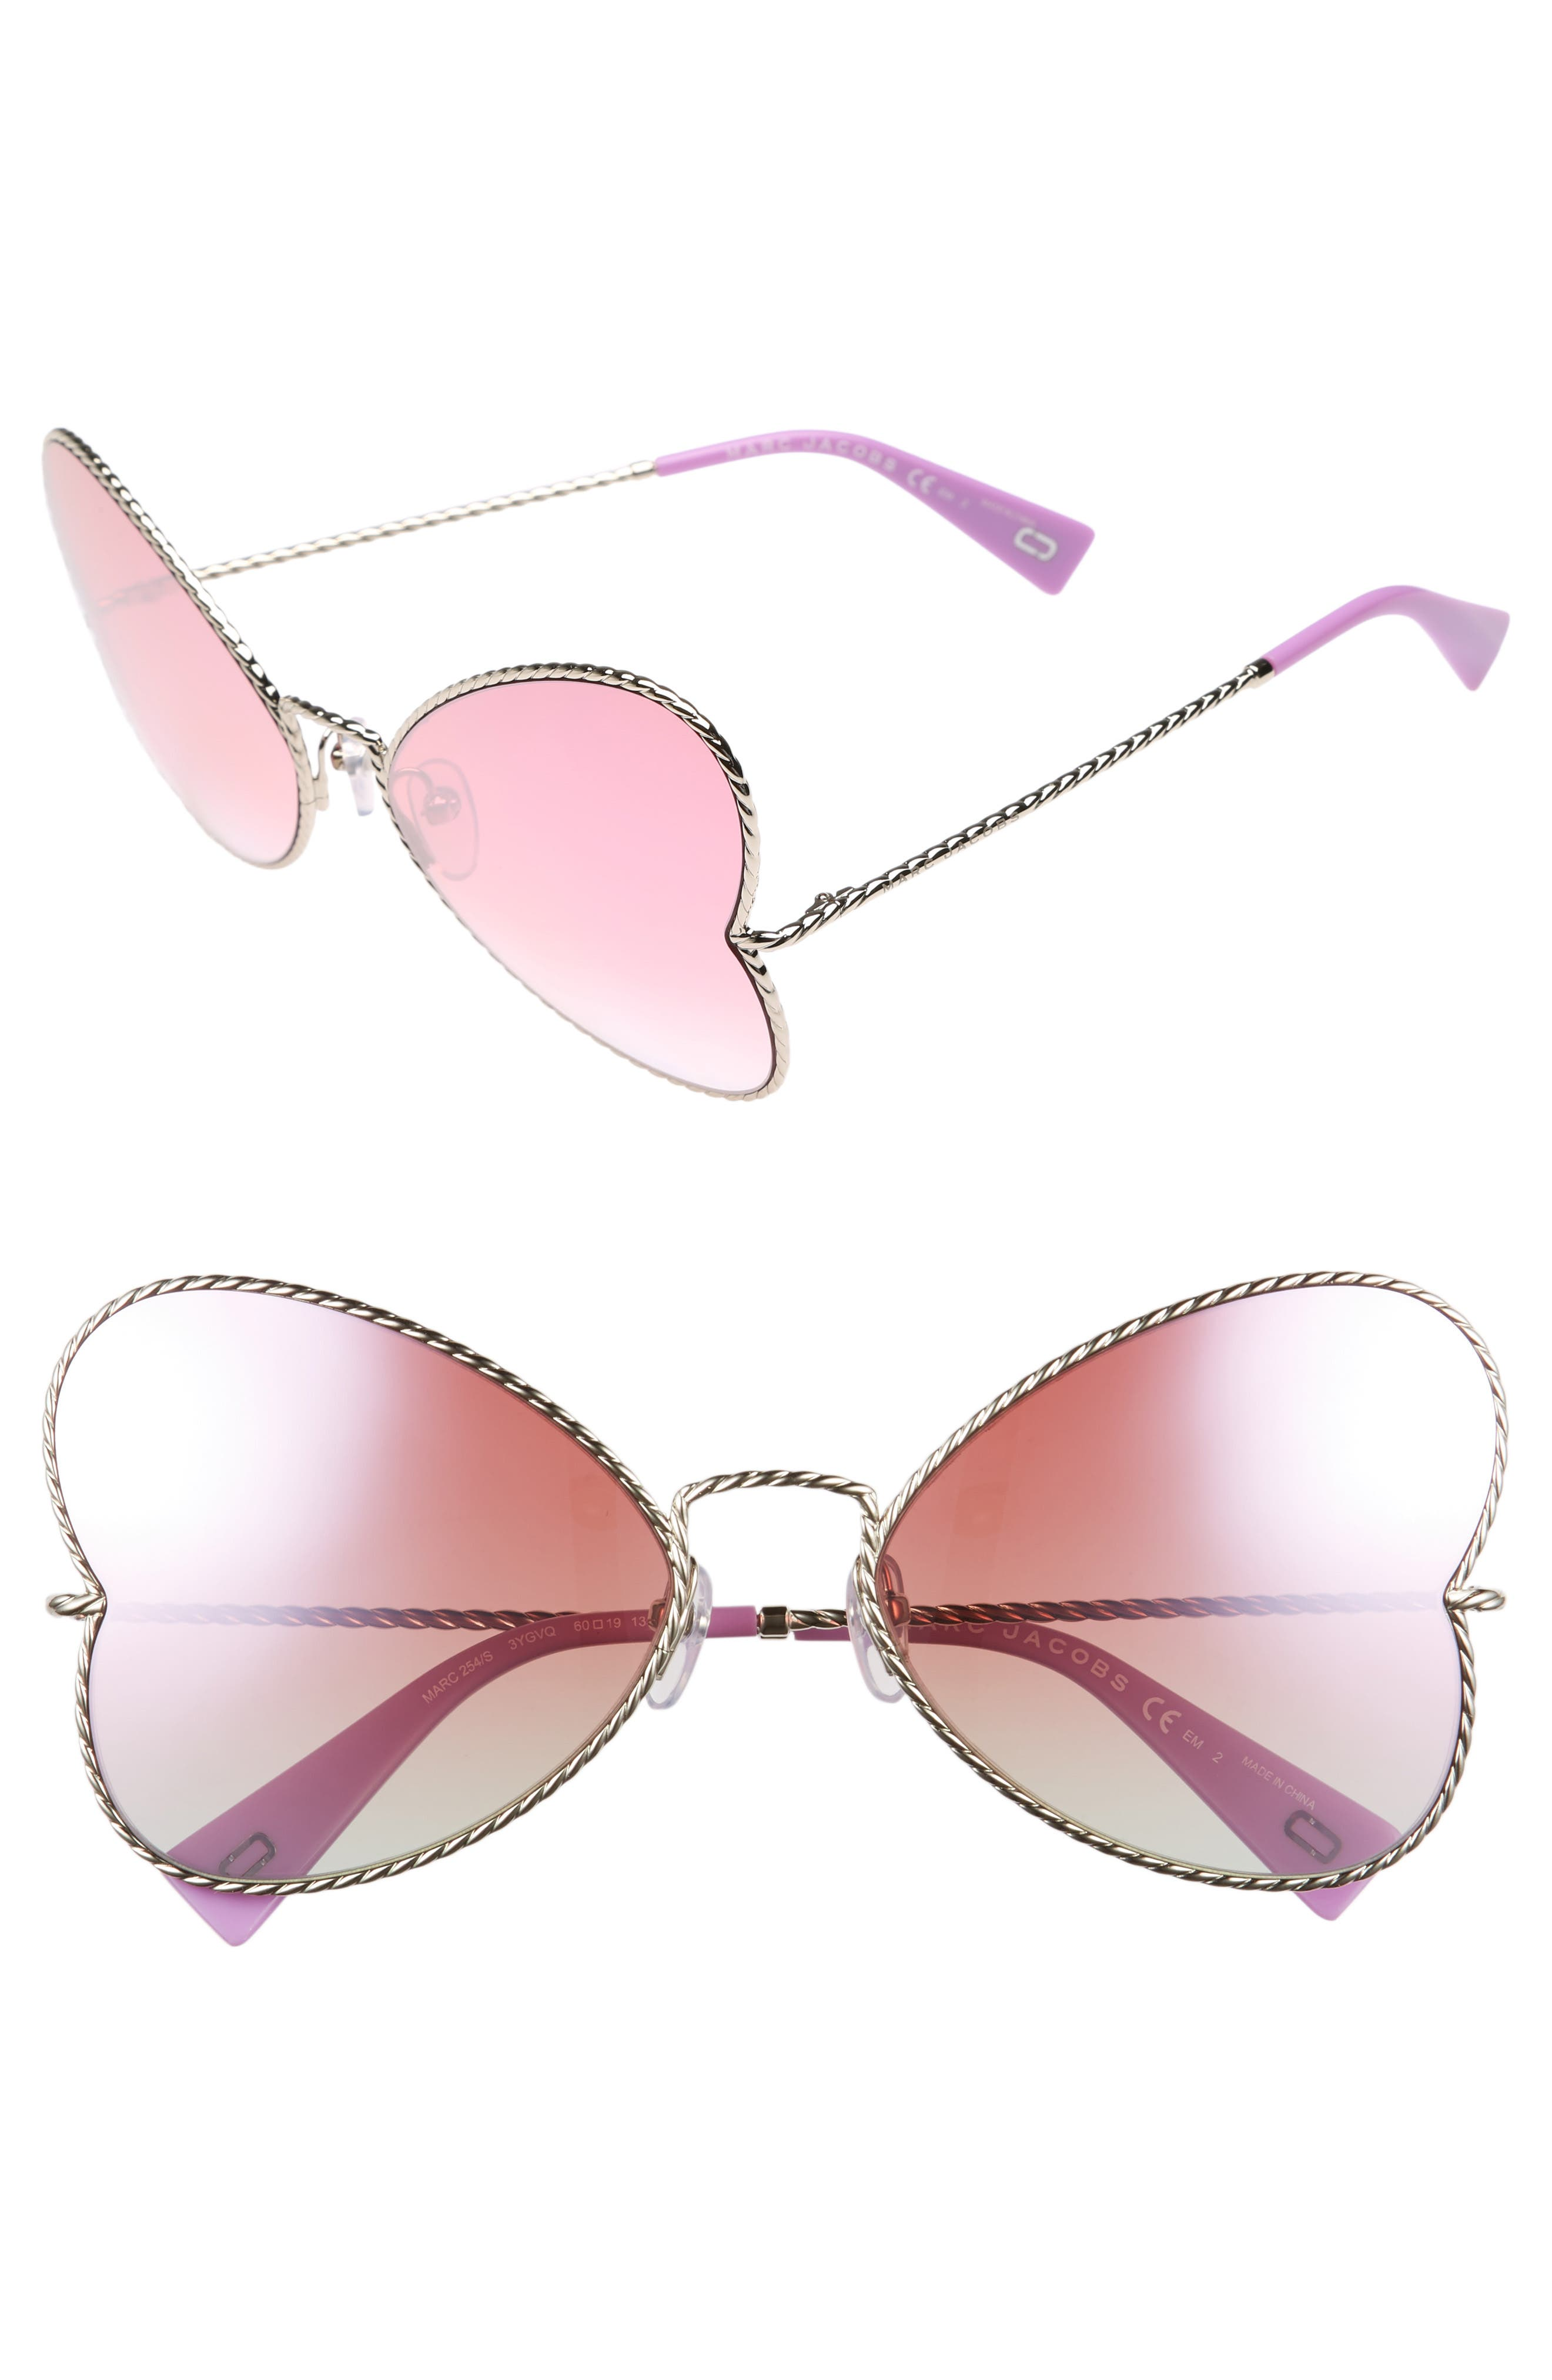 Main Image - MARC JACOBS 60mm Heart Sunglasses